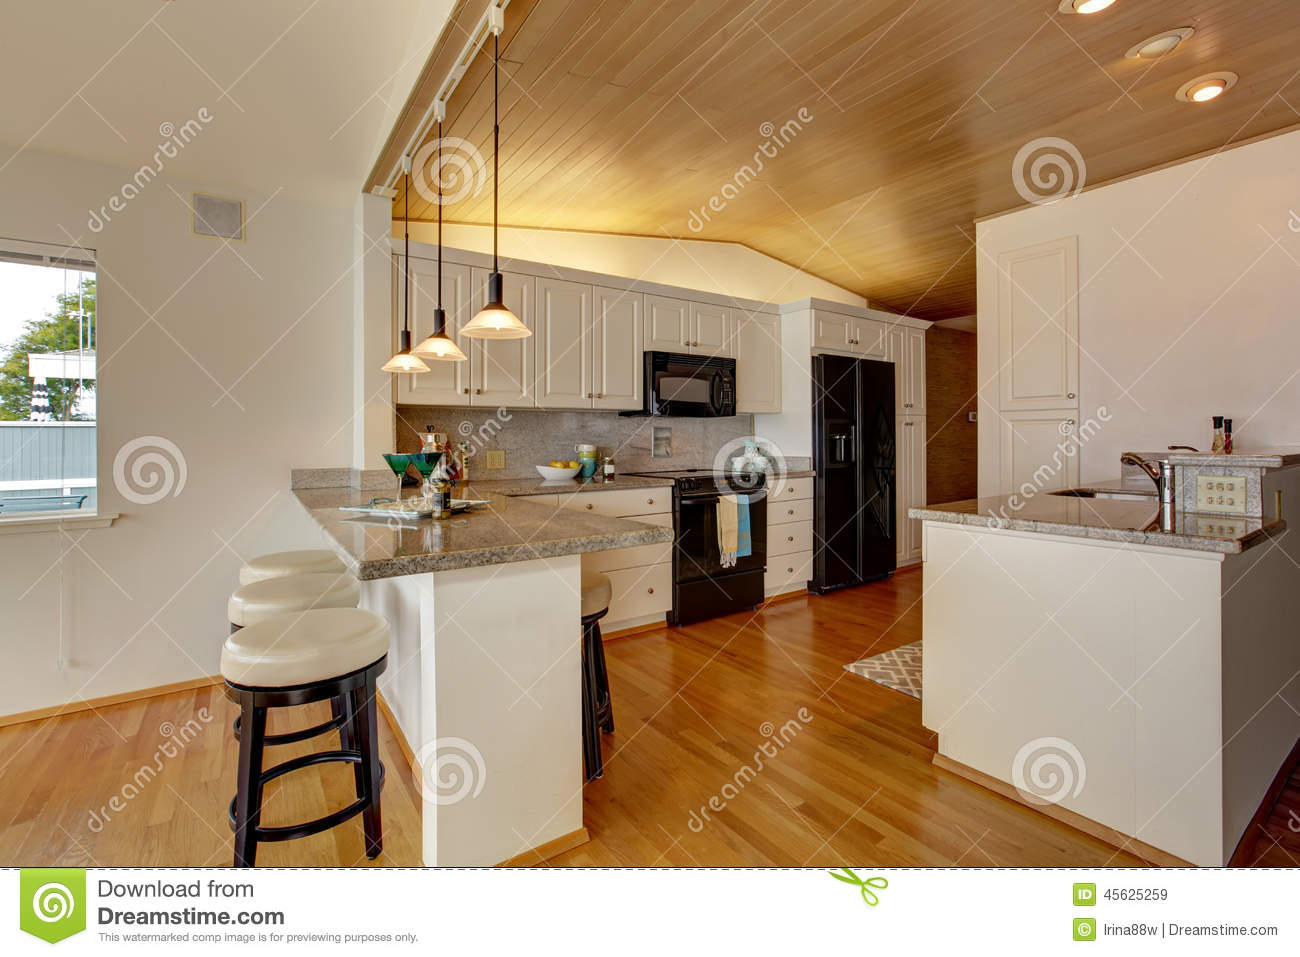 Cabinets with black appliances granite counter top with bar stools